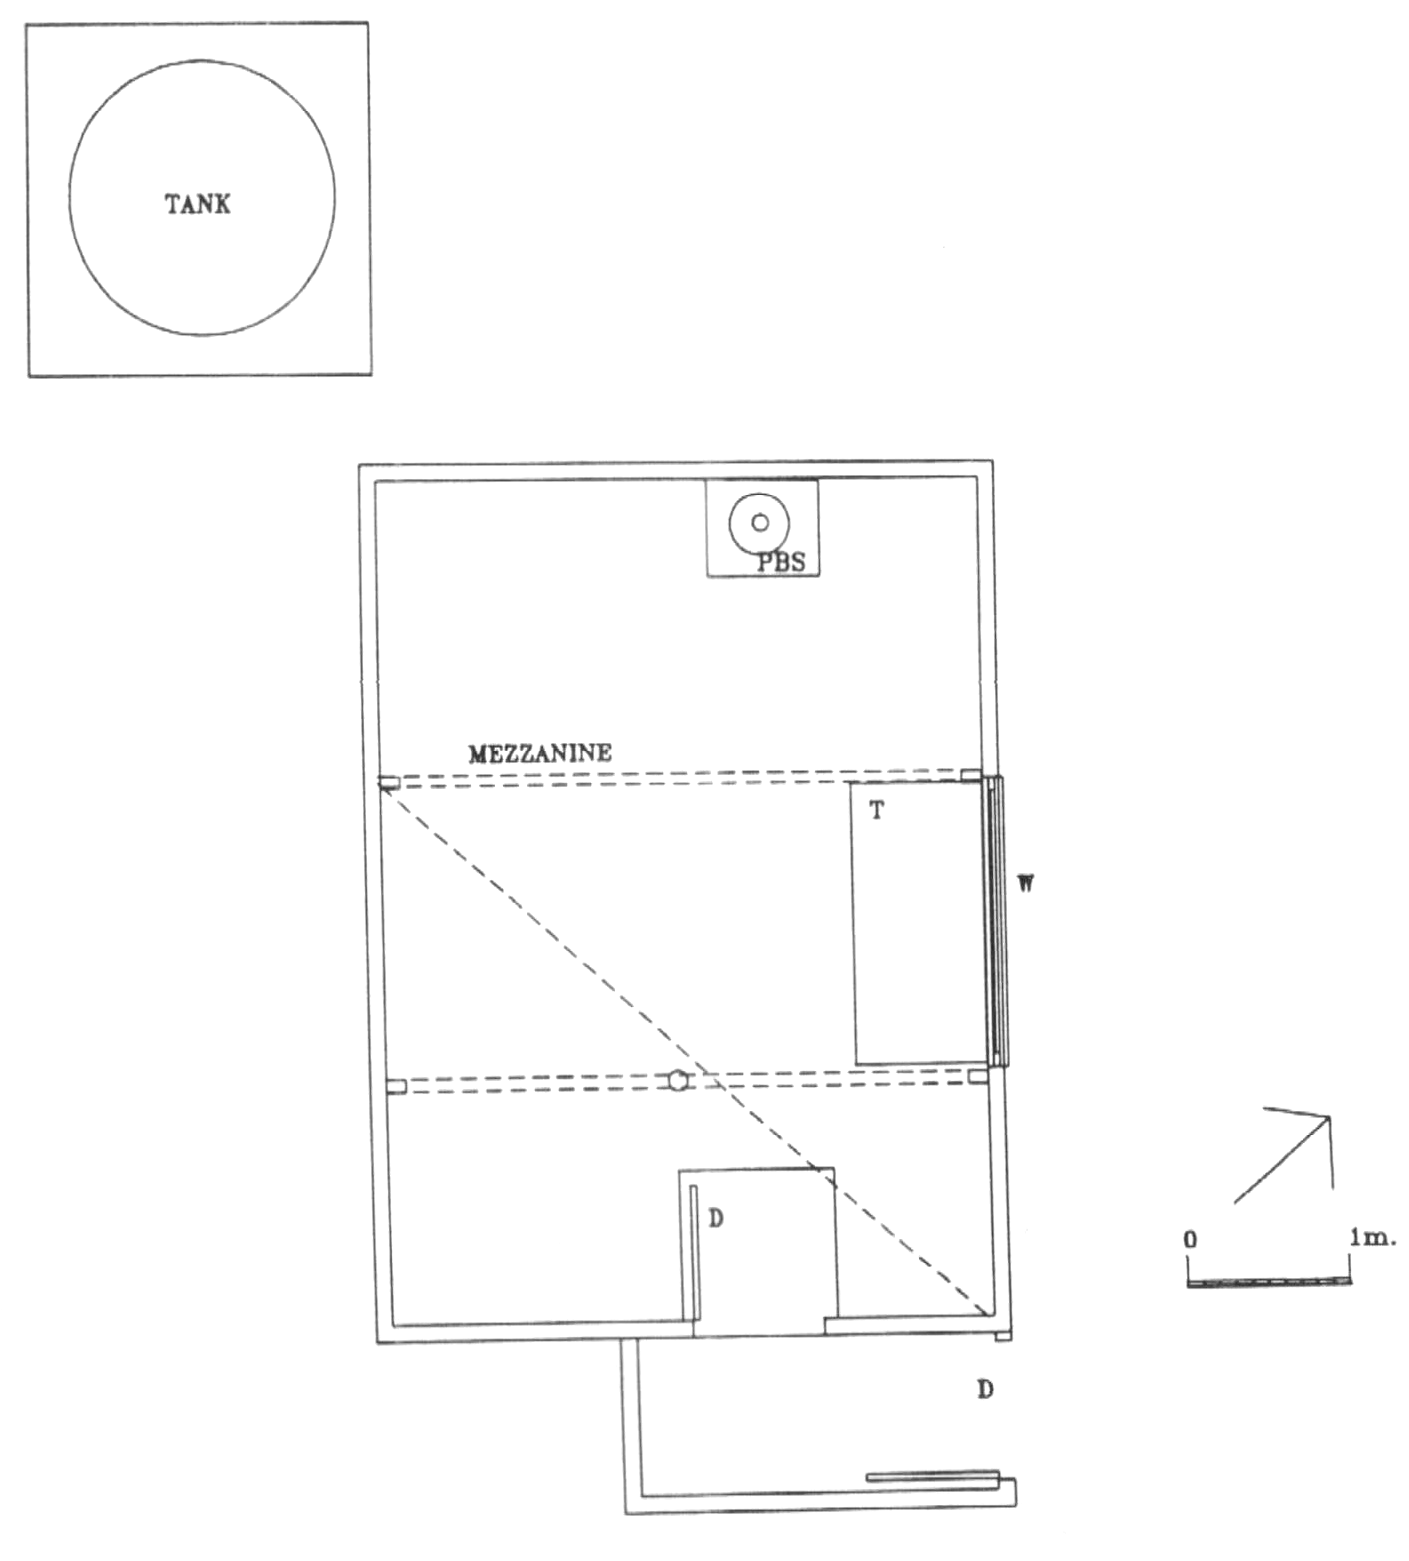 Plan of the original Federation Hut. From: Victorian alpine huts heritage survey, 1996. p 102